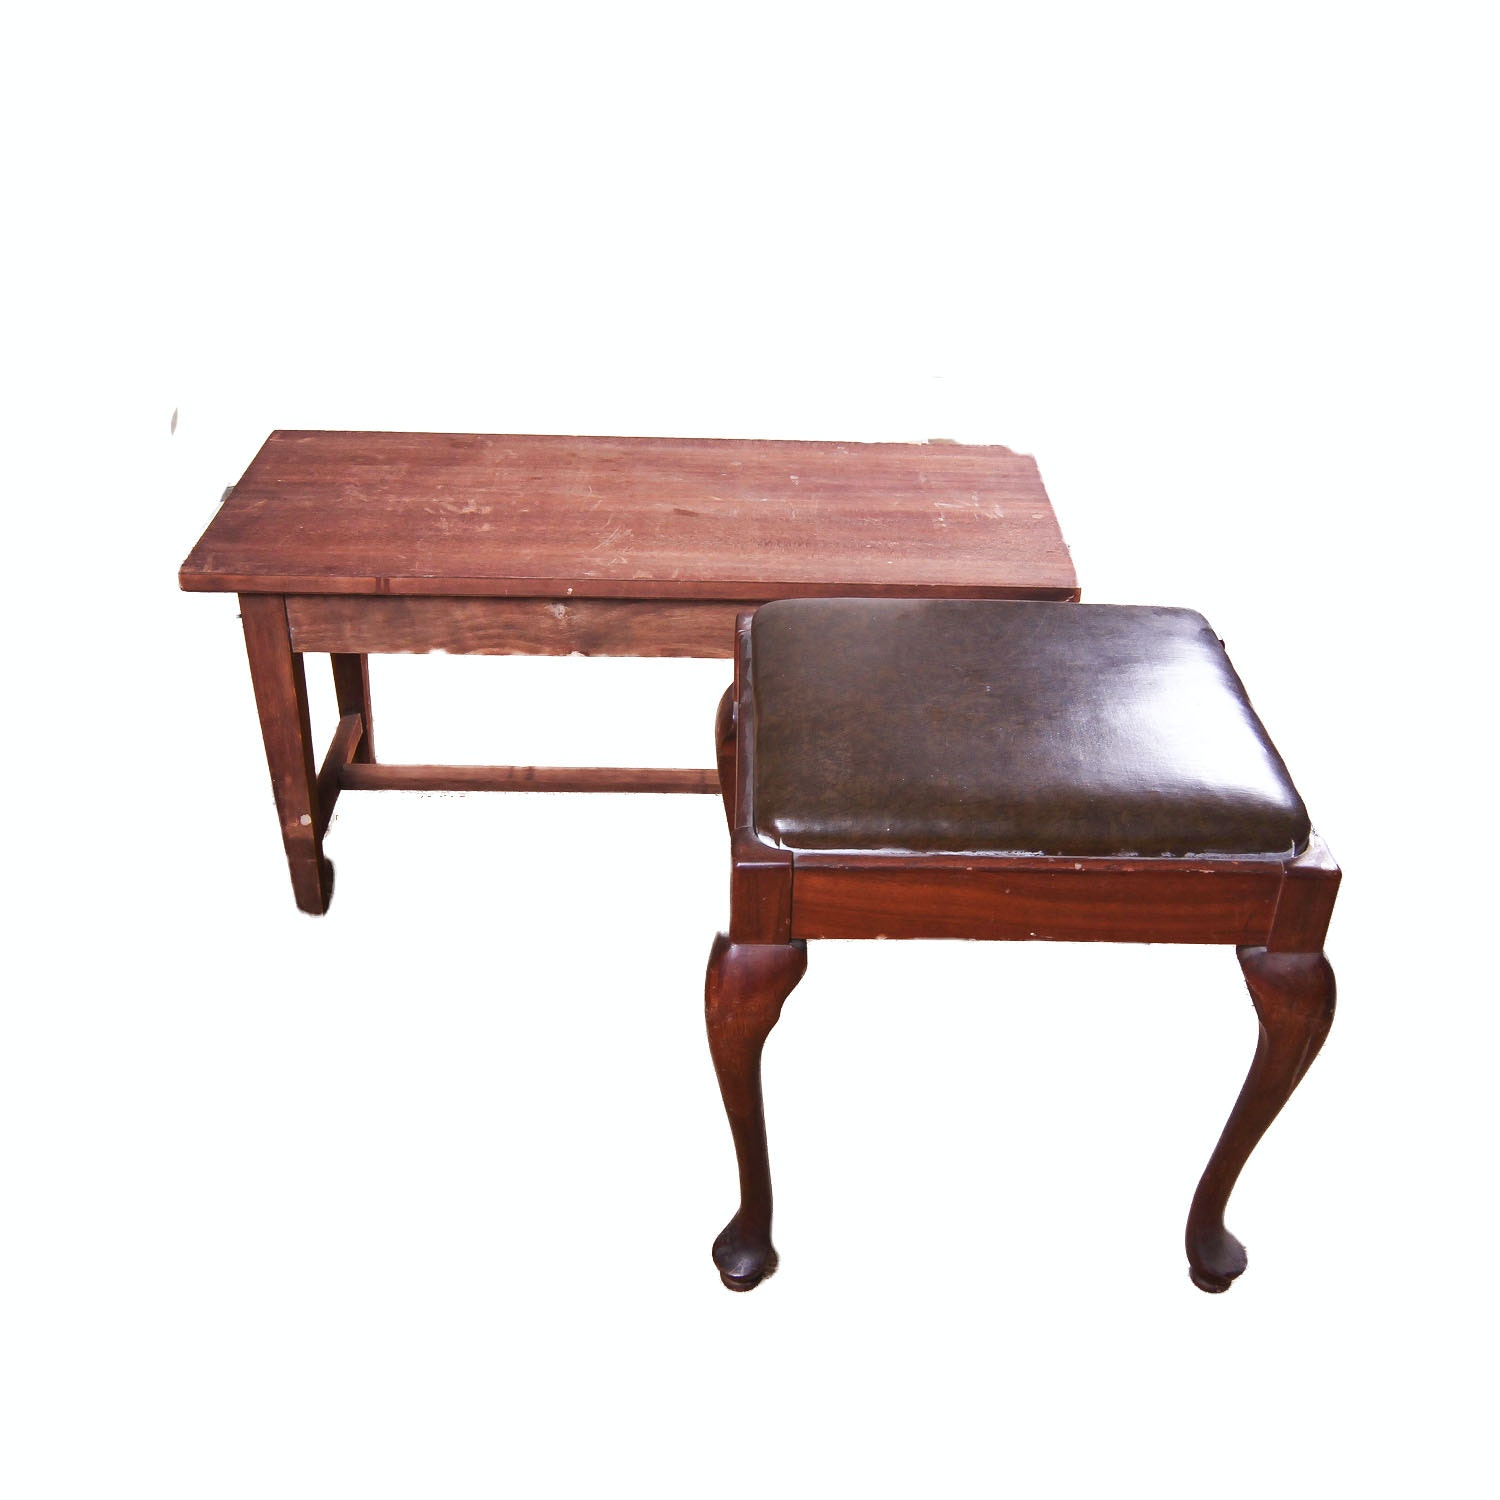 Queen Anne Style Stool and Wood Piano Bench